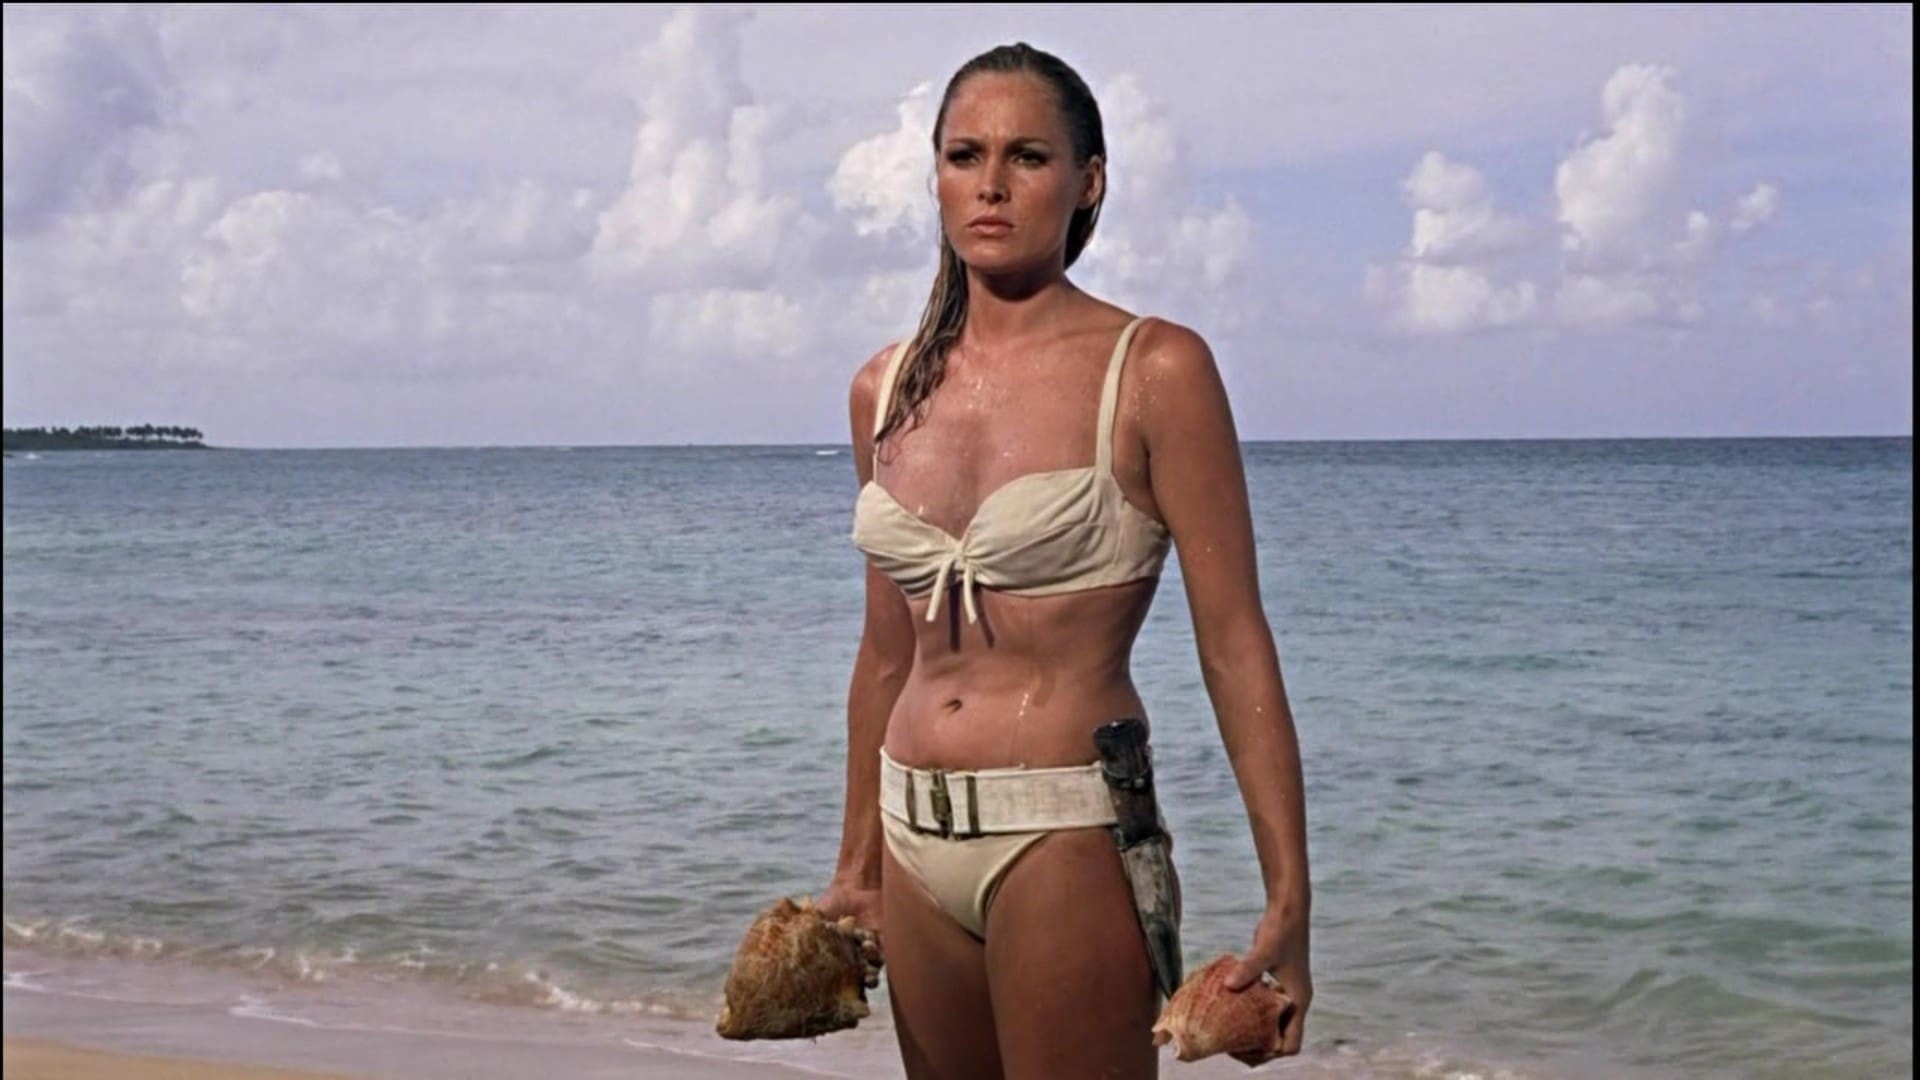 Andrea Anders Bikini 93% of people can't name all of these bond girls from one